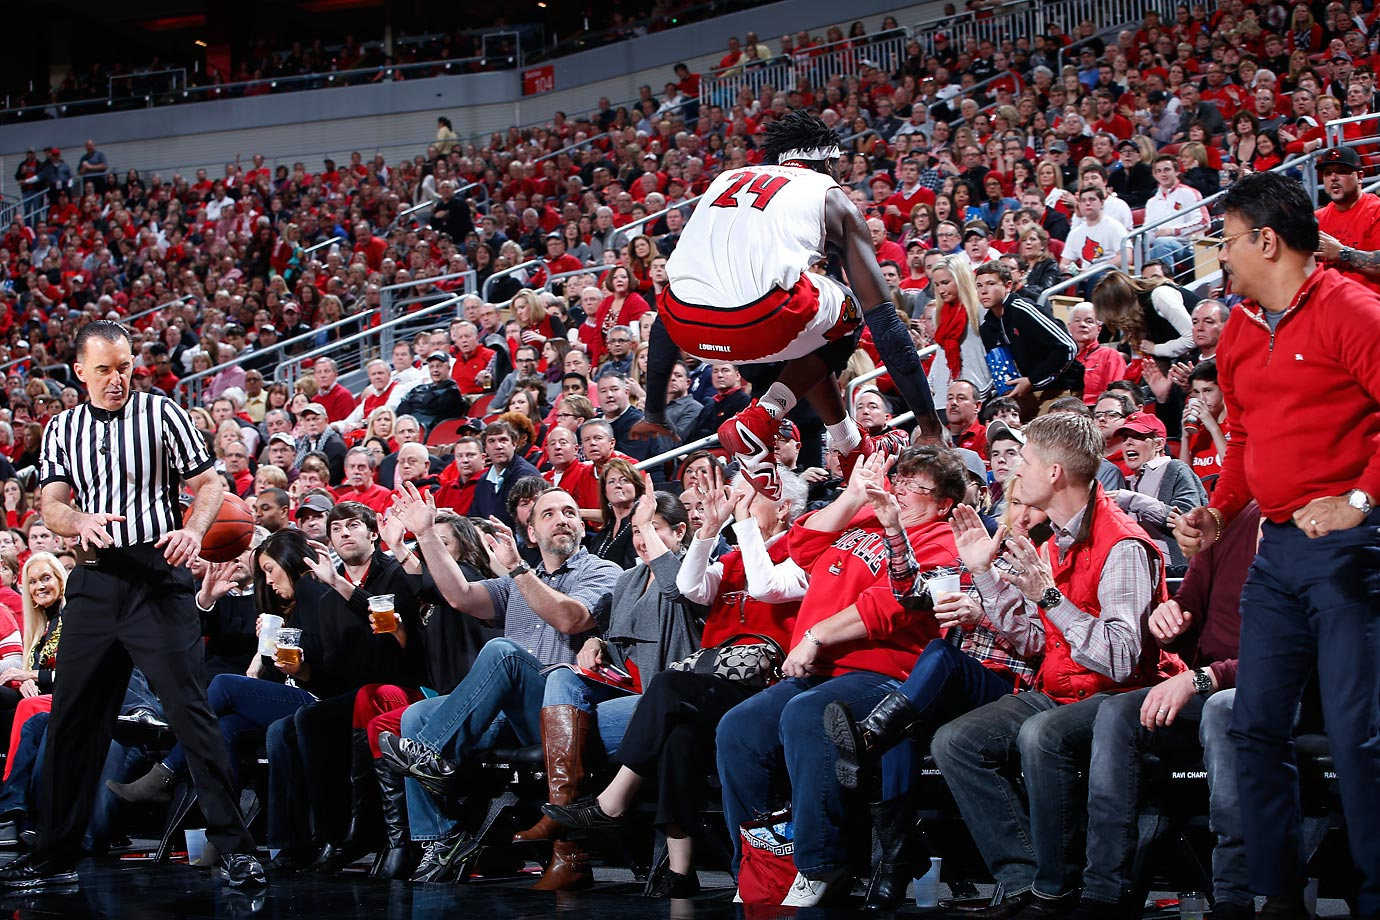 Montrezl Harrell of the Louisville Cardinals jumps over a section of fans while trying to save the ball from going out of bounds during a game against North Carolina State.